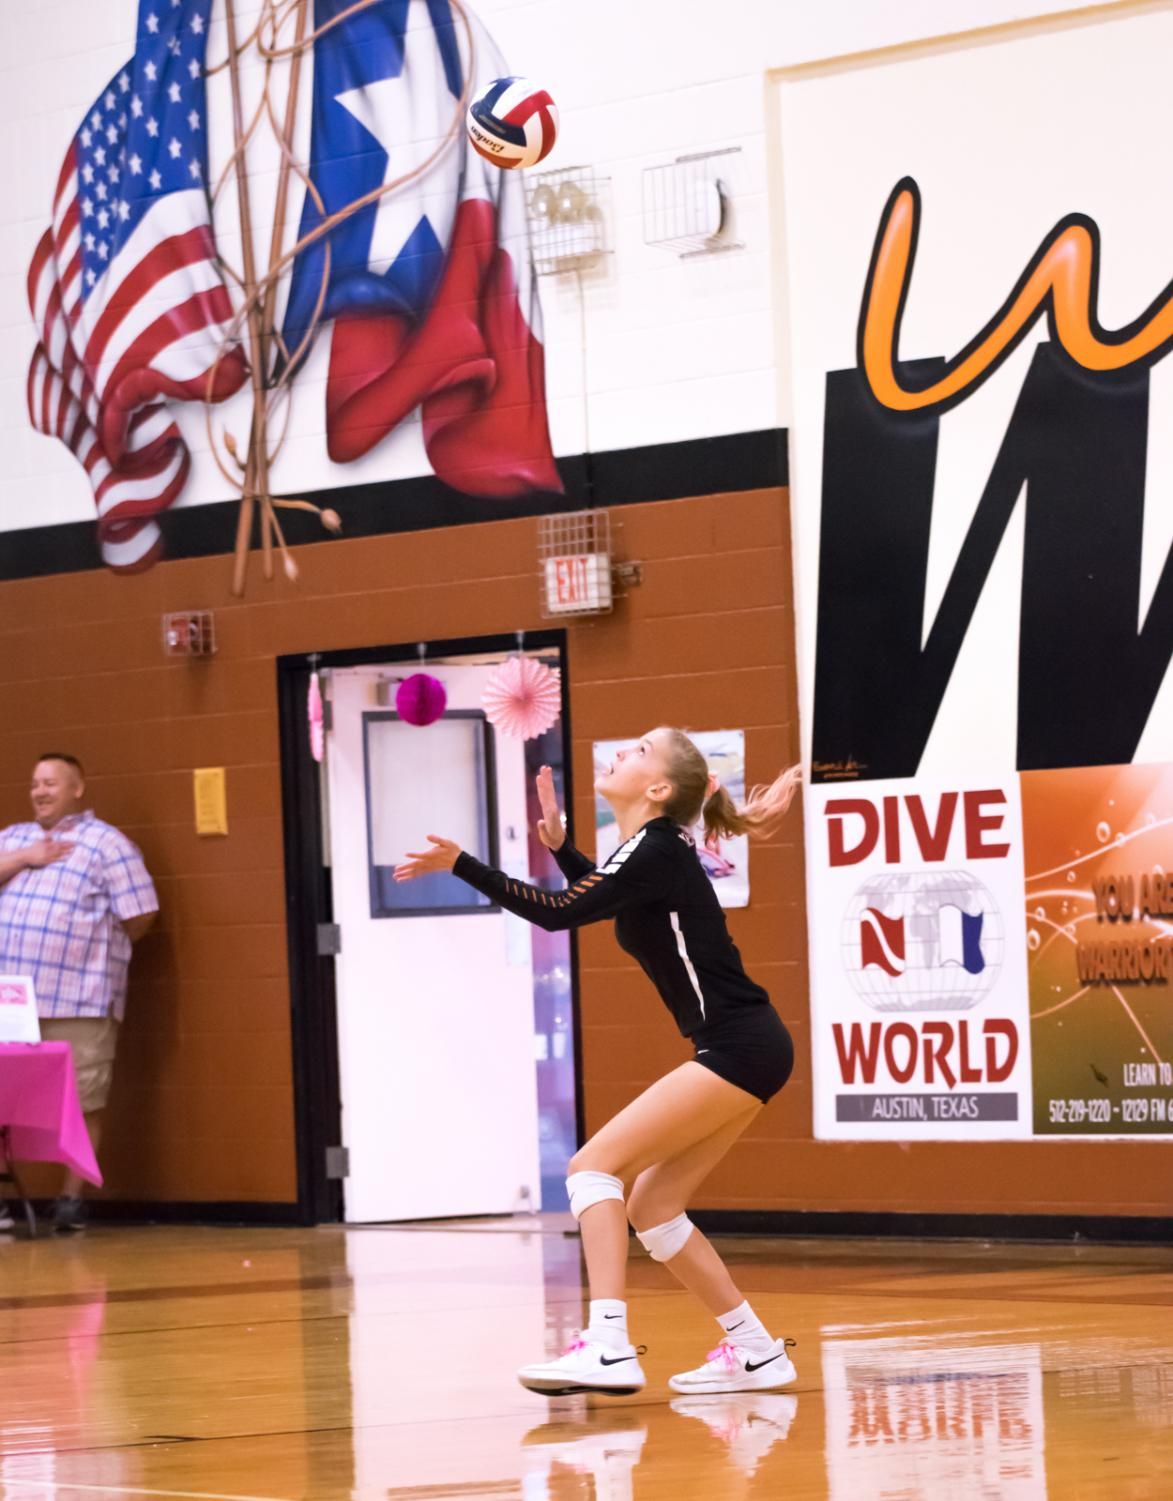 With+the+ball+in+the+air%2C+Claire+Delane+%2723+eyes+it+carefully+to+execute+the+serve.+Delane+made+several+crucial+serves+throughout+the+game.